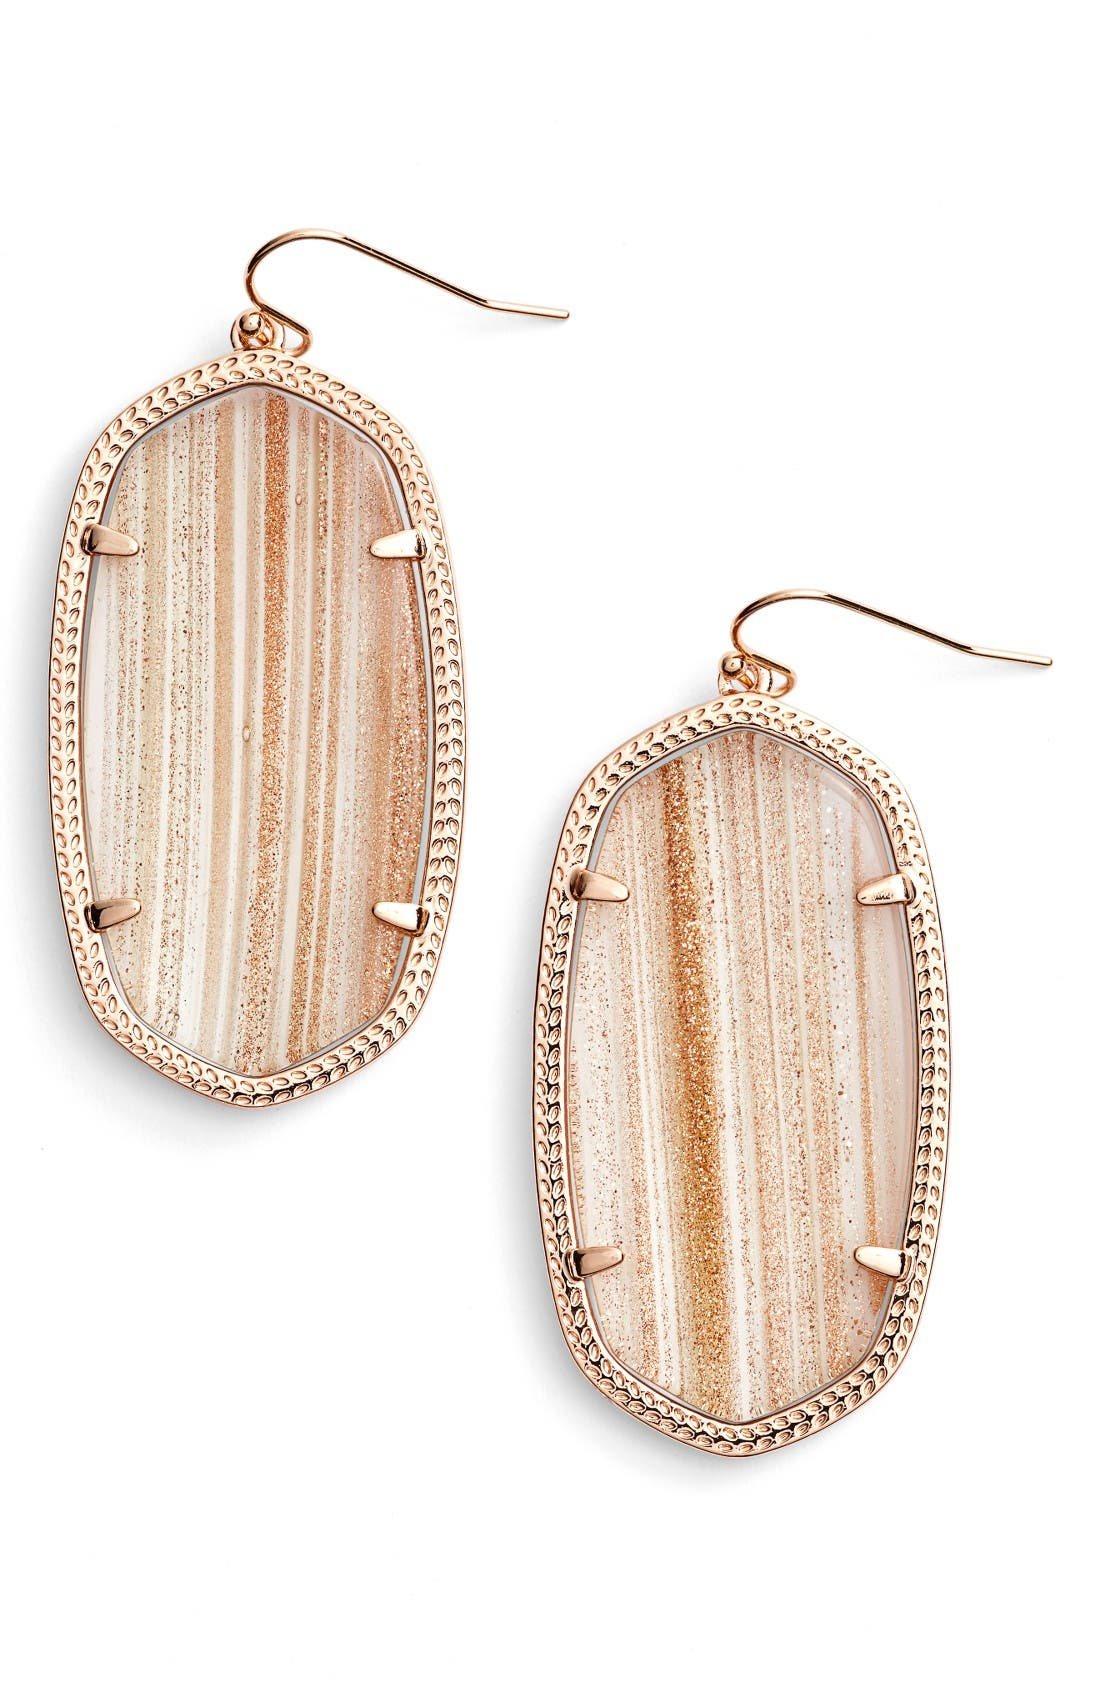 Alternate Image 1 Selected - Kendra Scott Danielle - Large Oval Statement Earrings